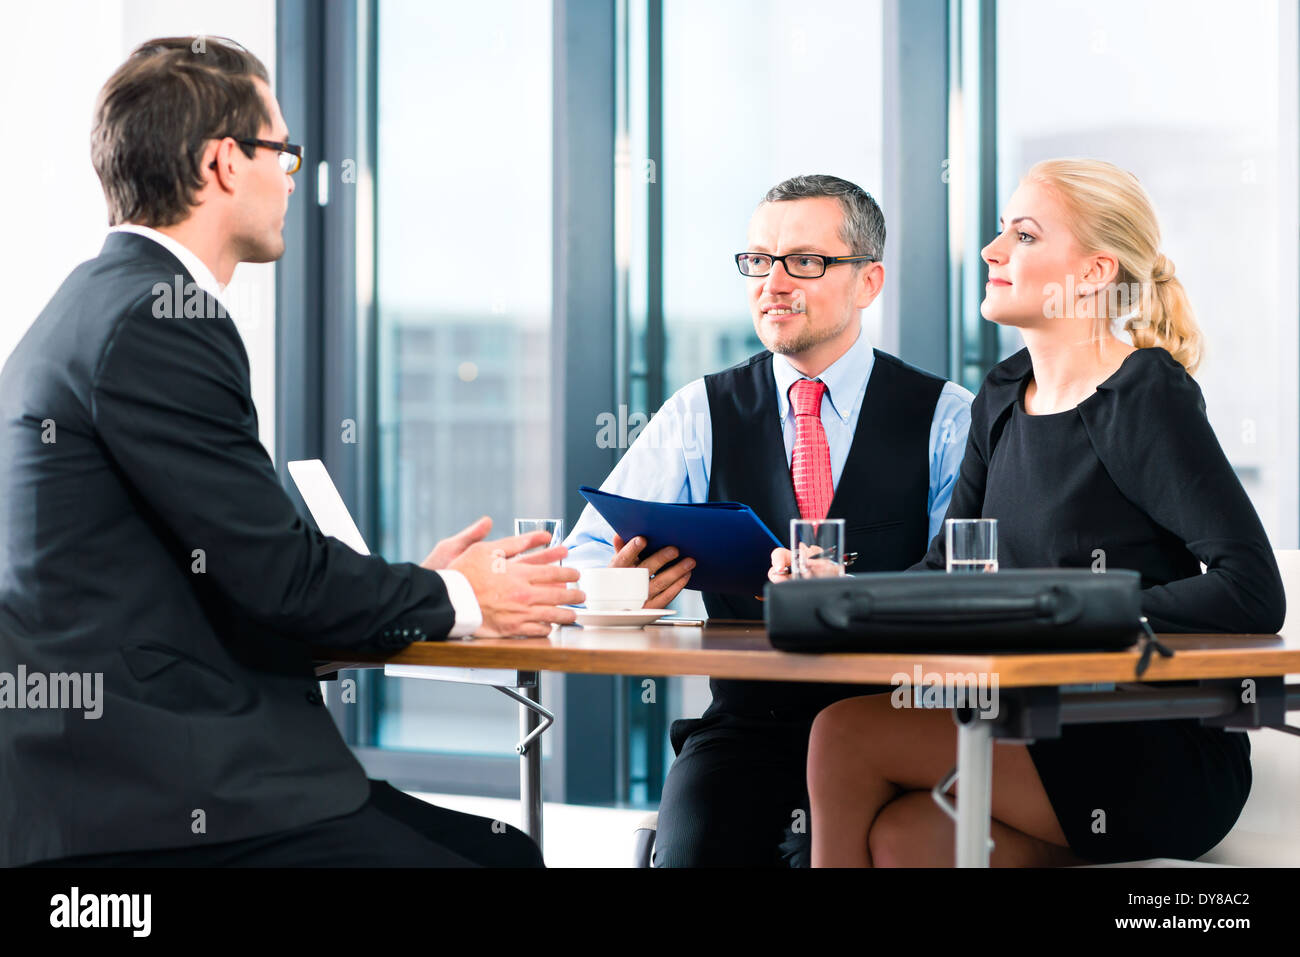 Business - young man in an Job interview, hands over his application papers to the boss and his female assistant in their office - Stock Image